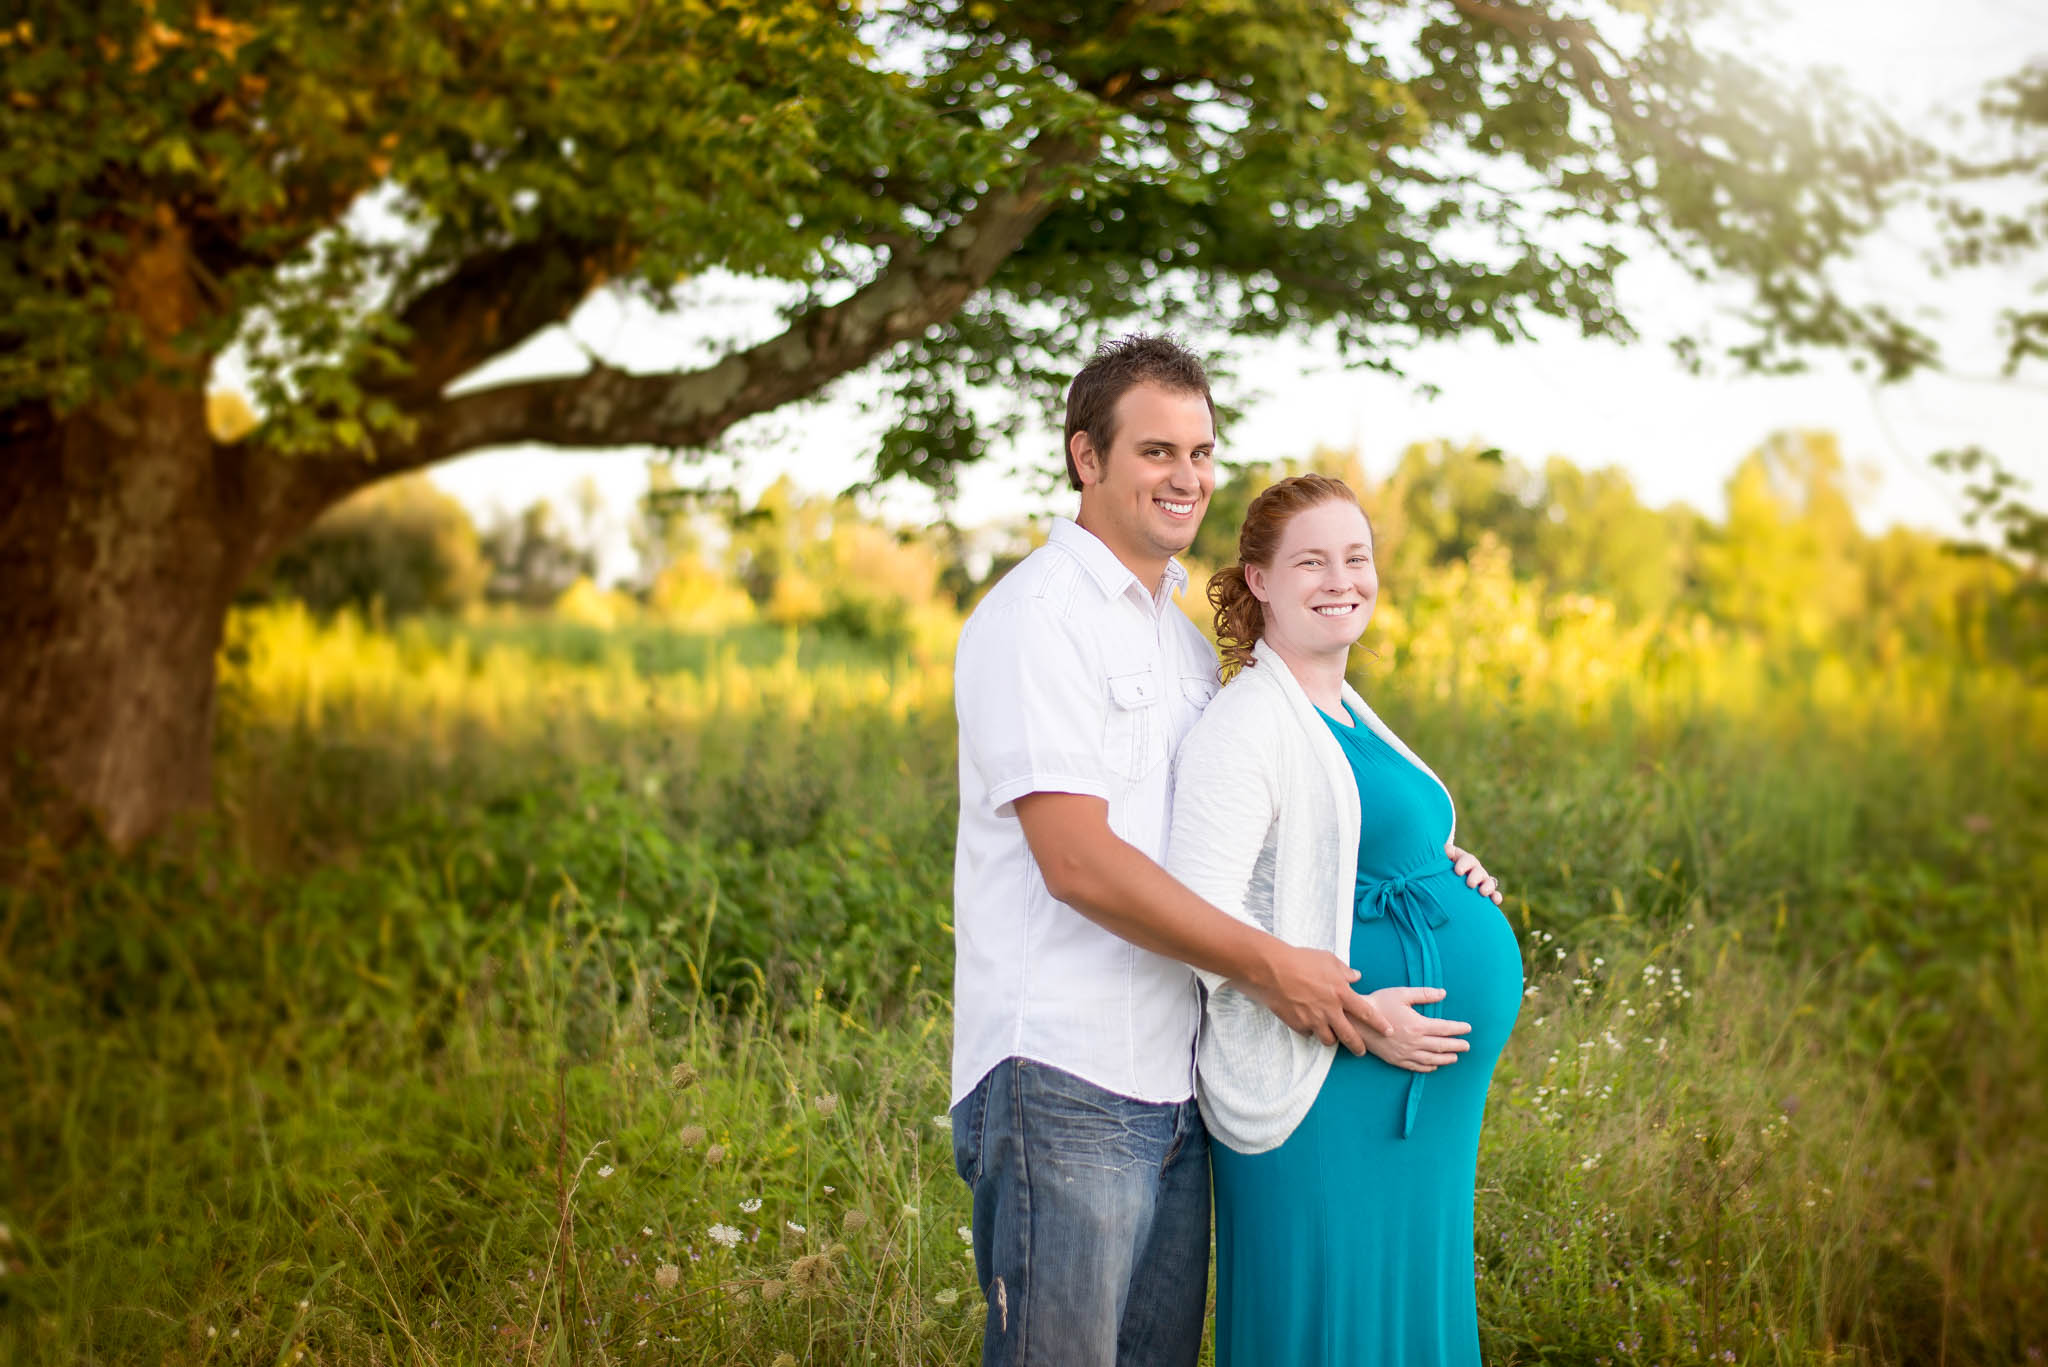 Maternity-New-Albany-Indiana-Louisville-Pregnant-Photography-17